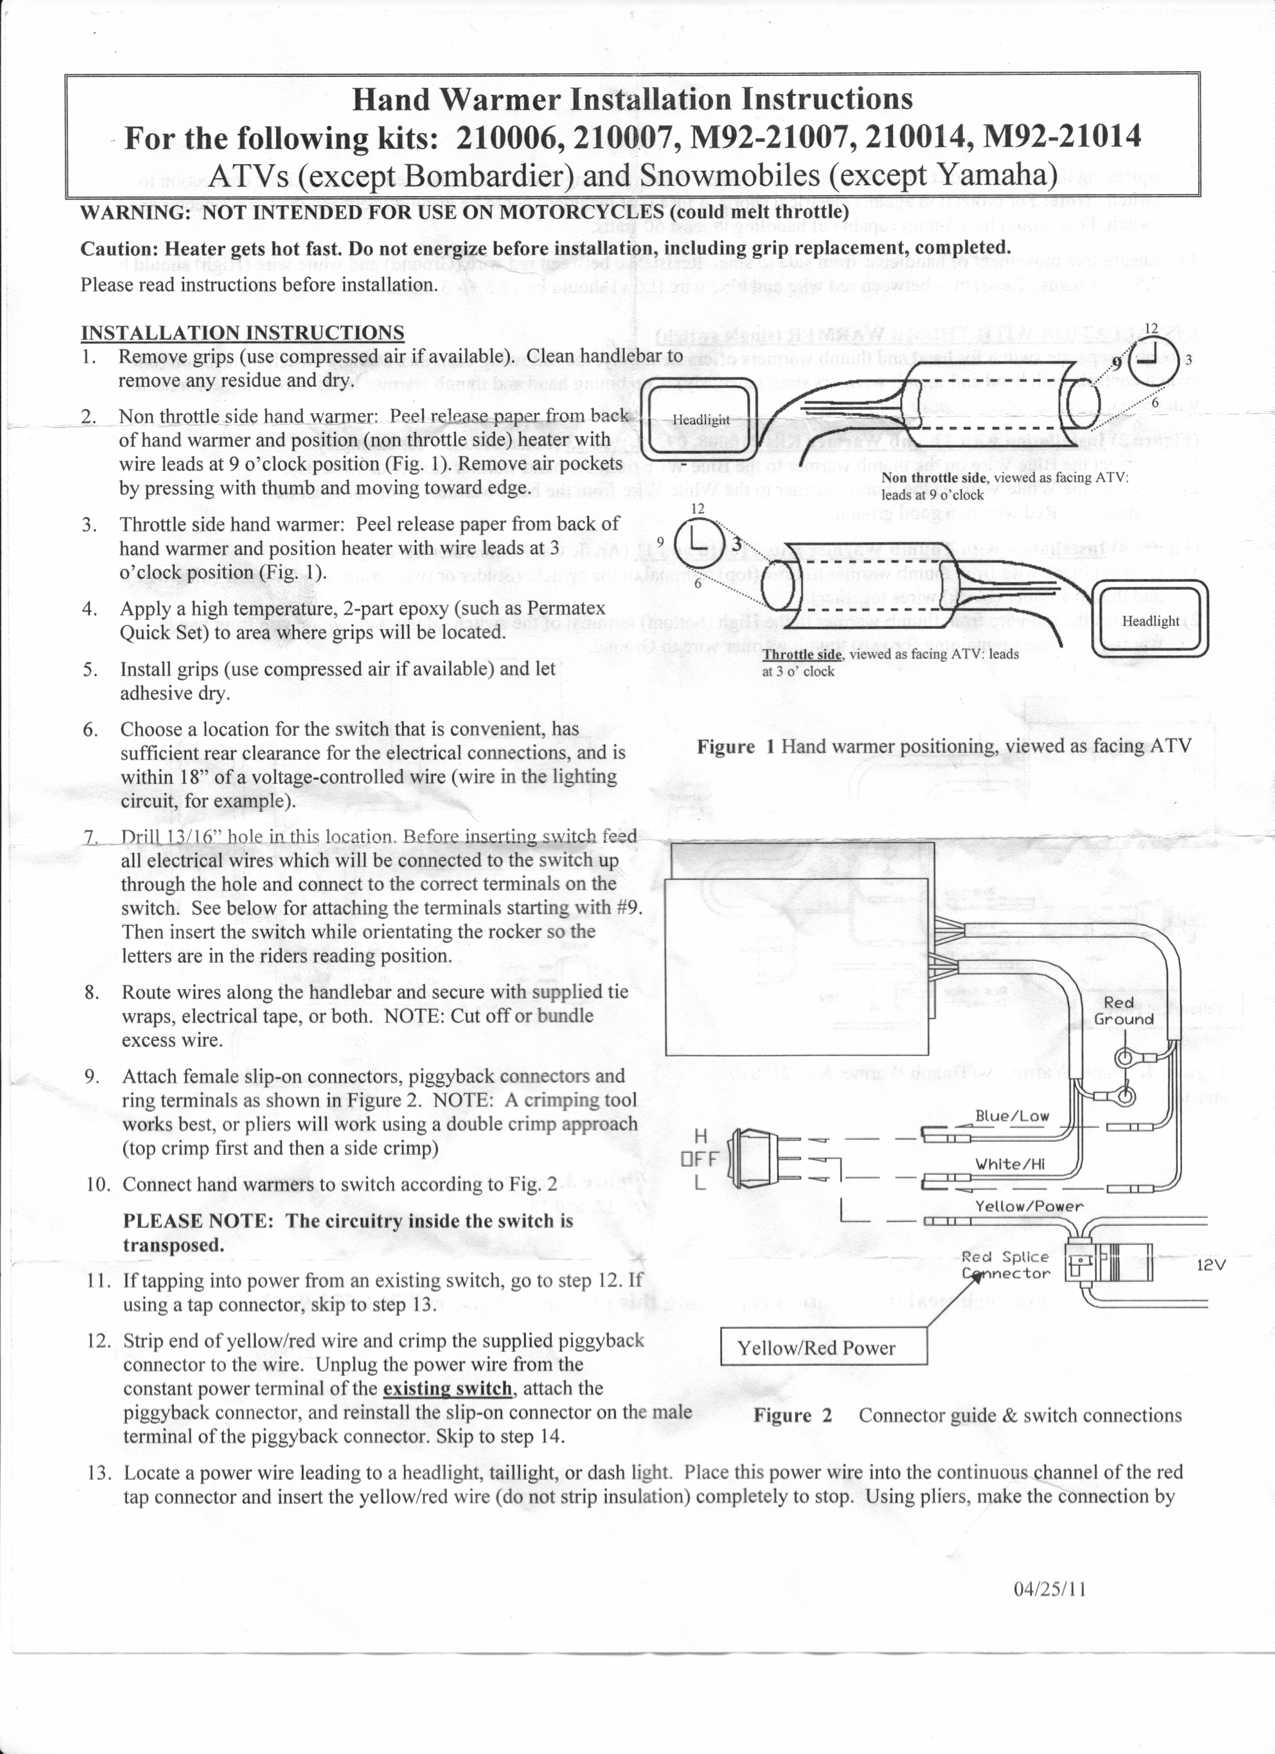 Kimpex Wiring Diagram 21 Images Diagrams Heated Grips Wire 286833d1382138612 Electrical Experts Hacks Question About Installing Instuctions For Or